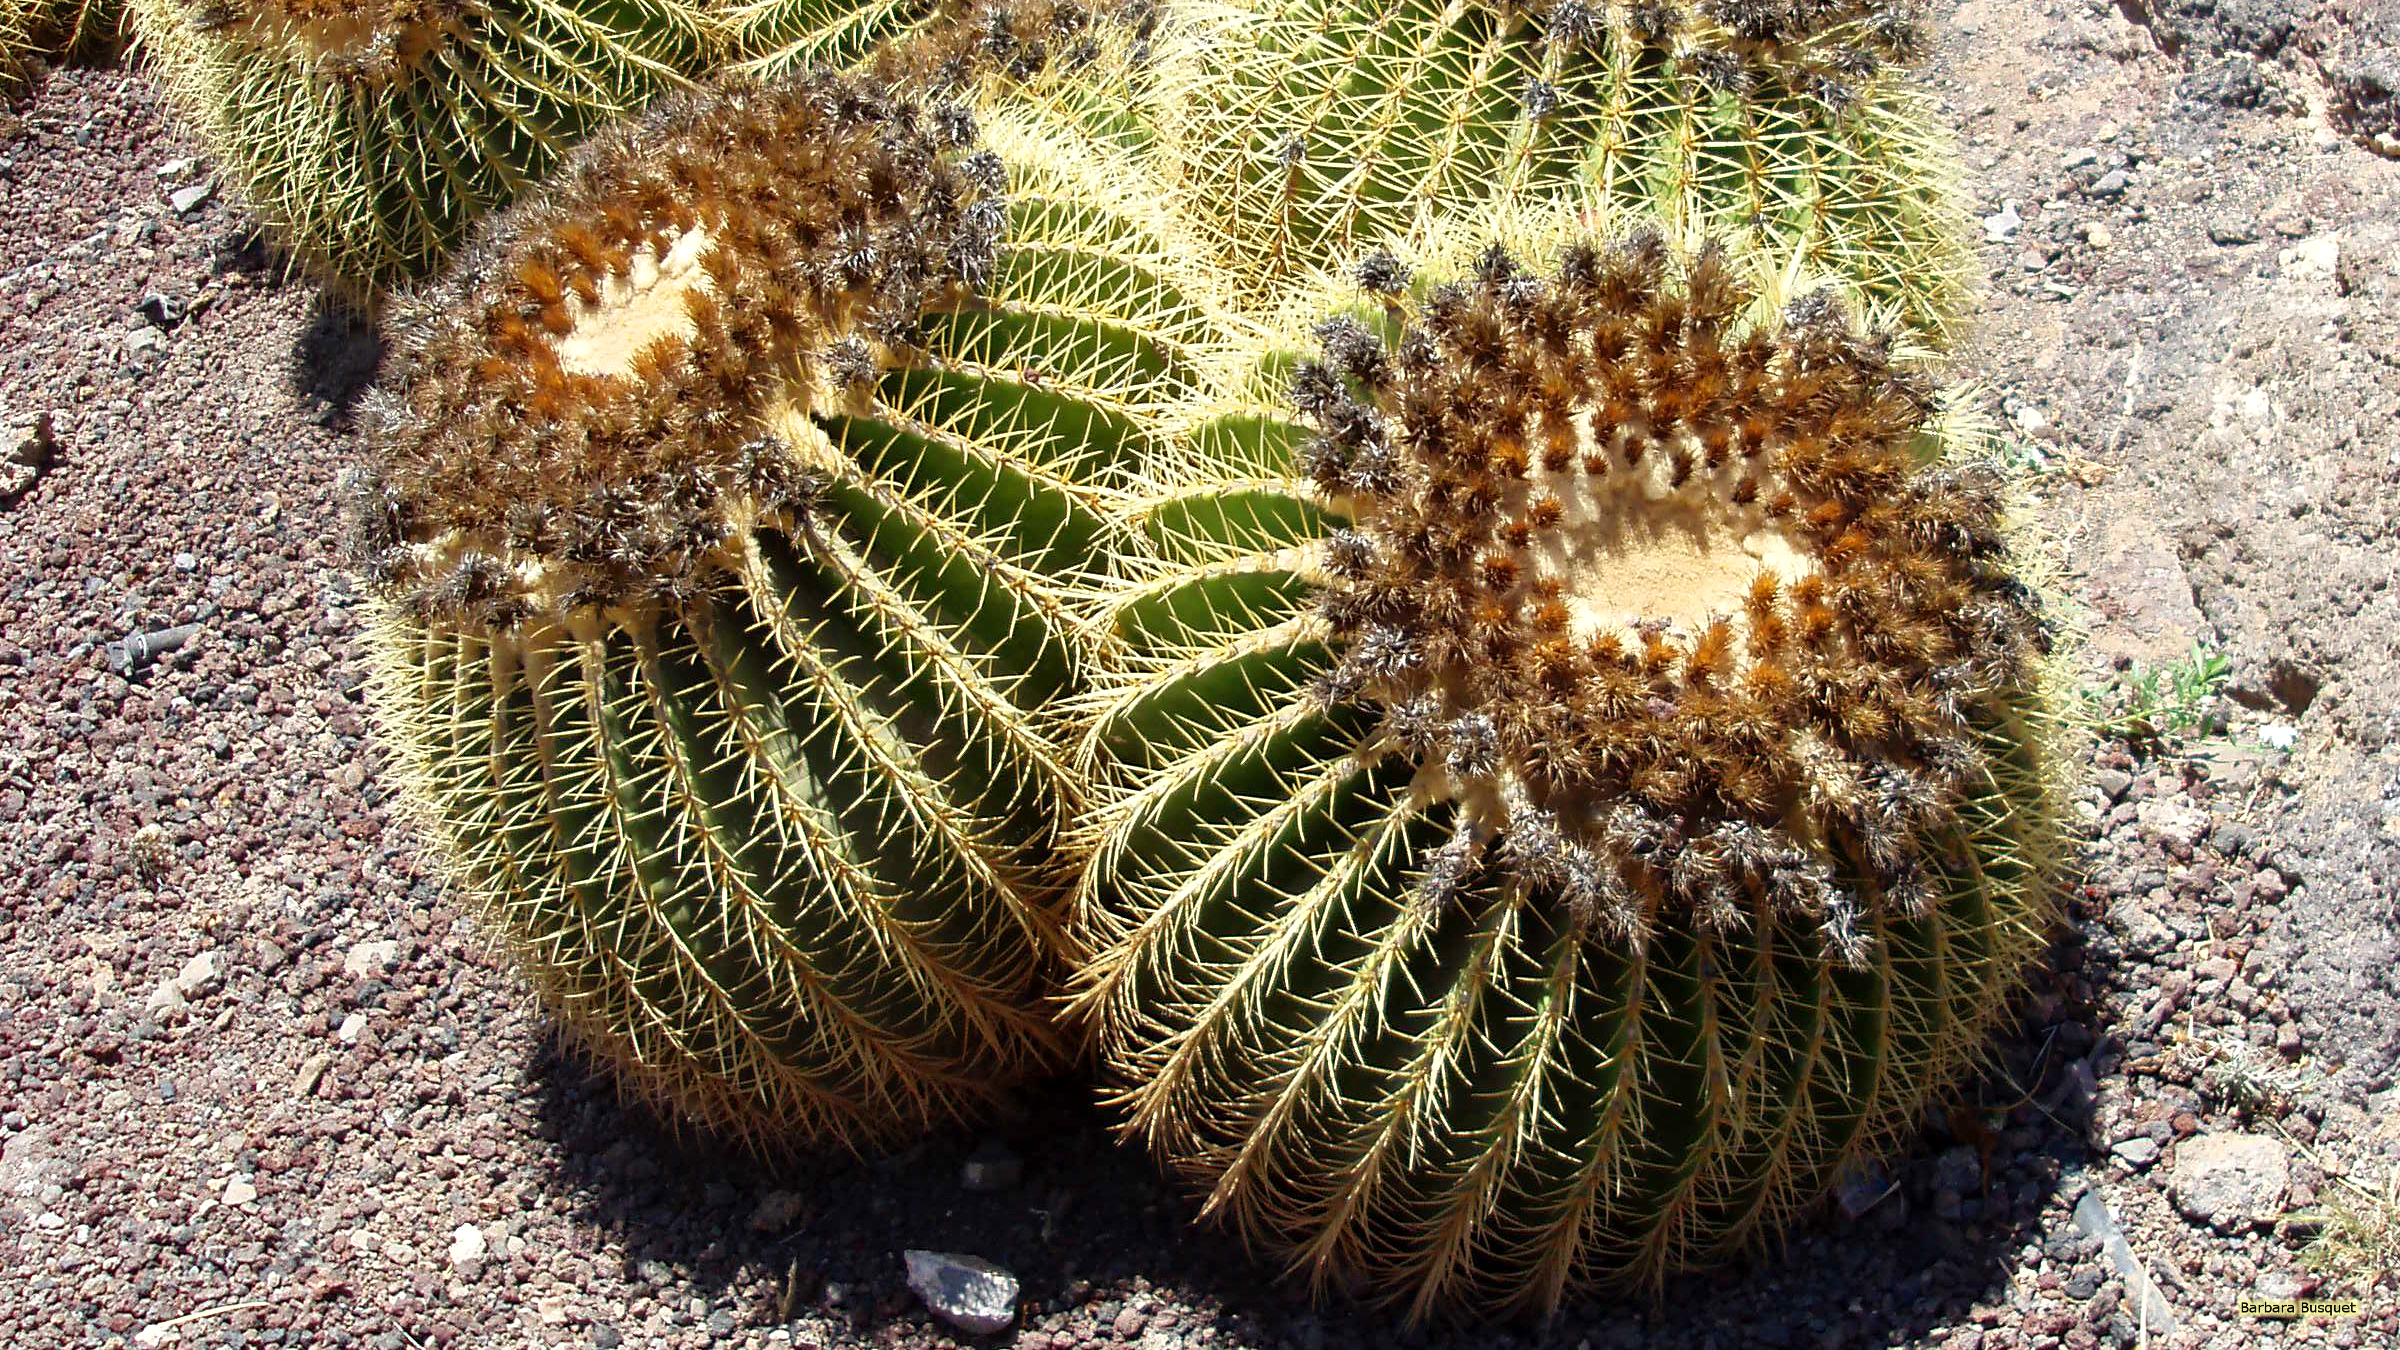 hd cactus wallpapers - photo #39